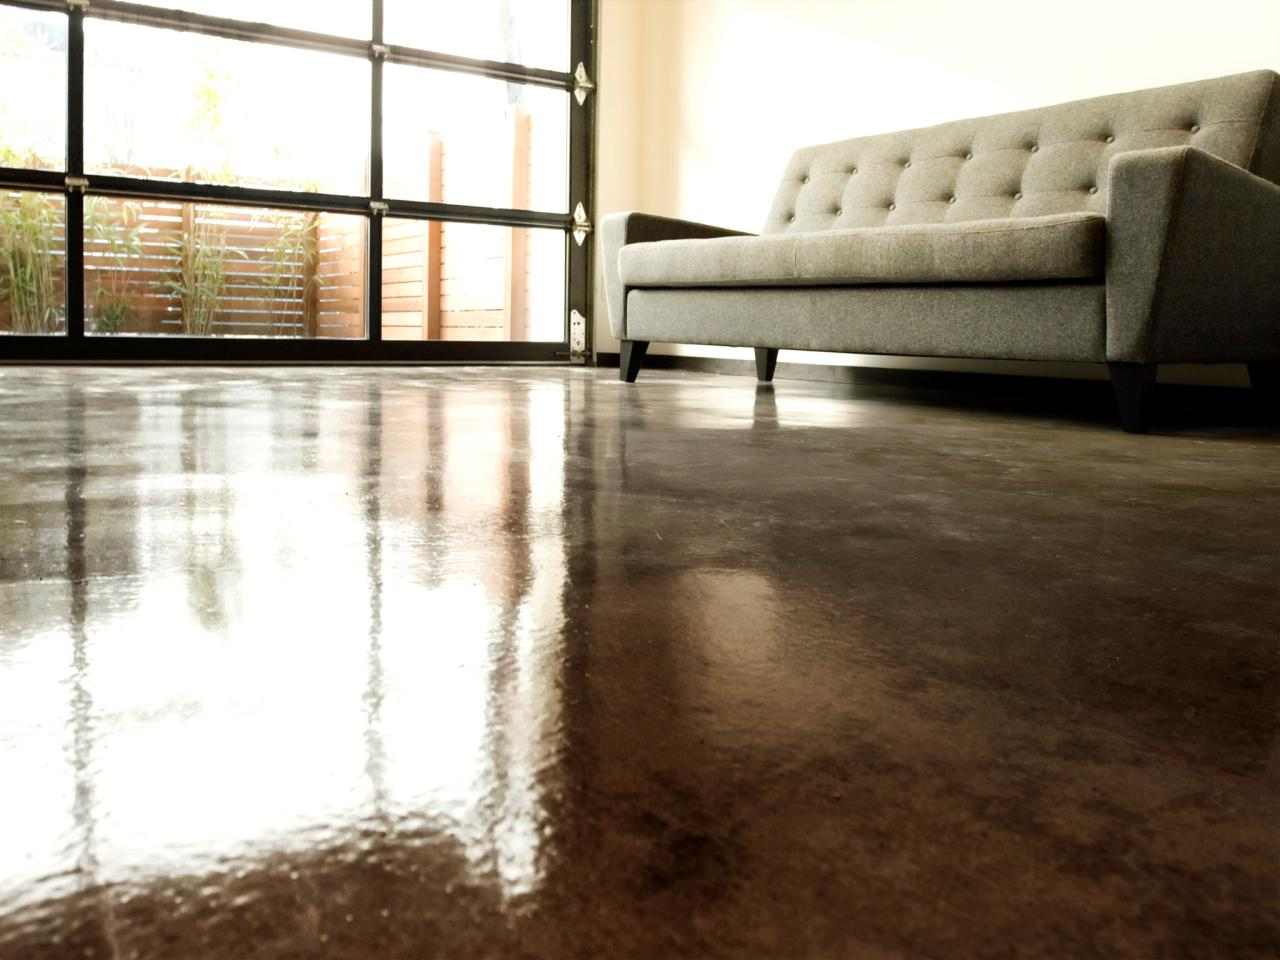 how to apply an acid stain look to concrete flooring how tos diy. Black Bedroom Furniture Sets. Home Design Ideas